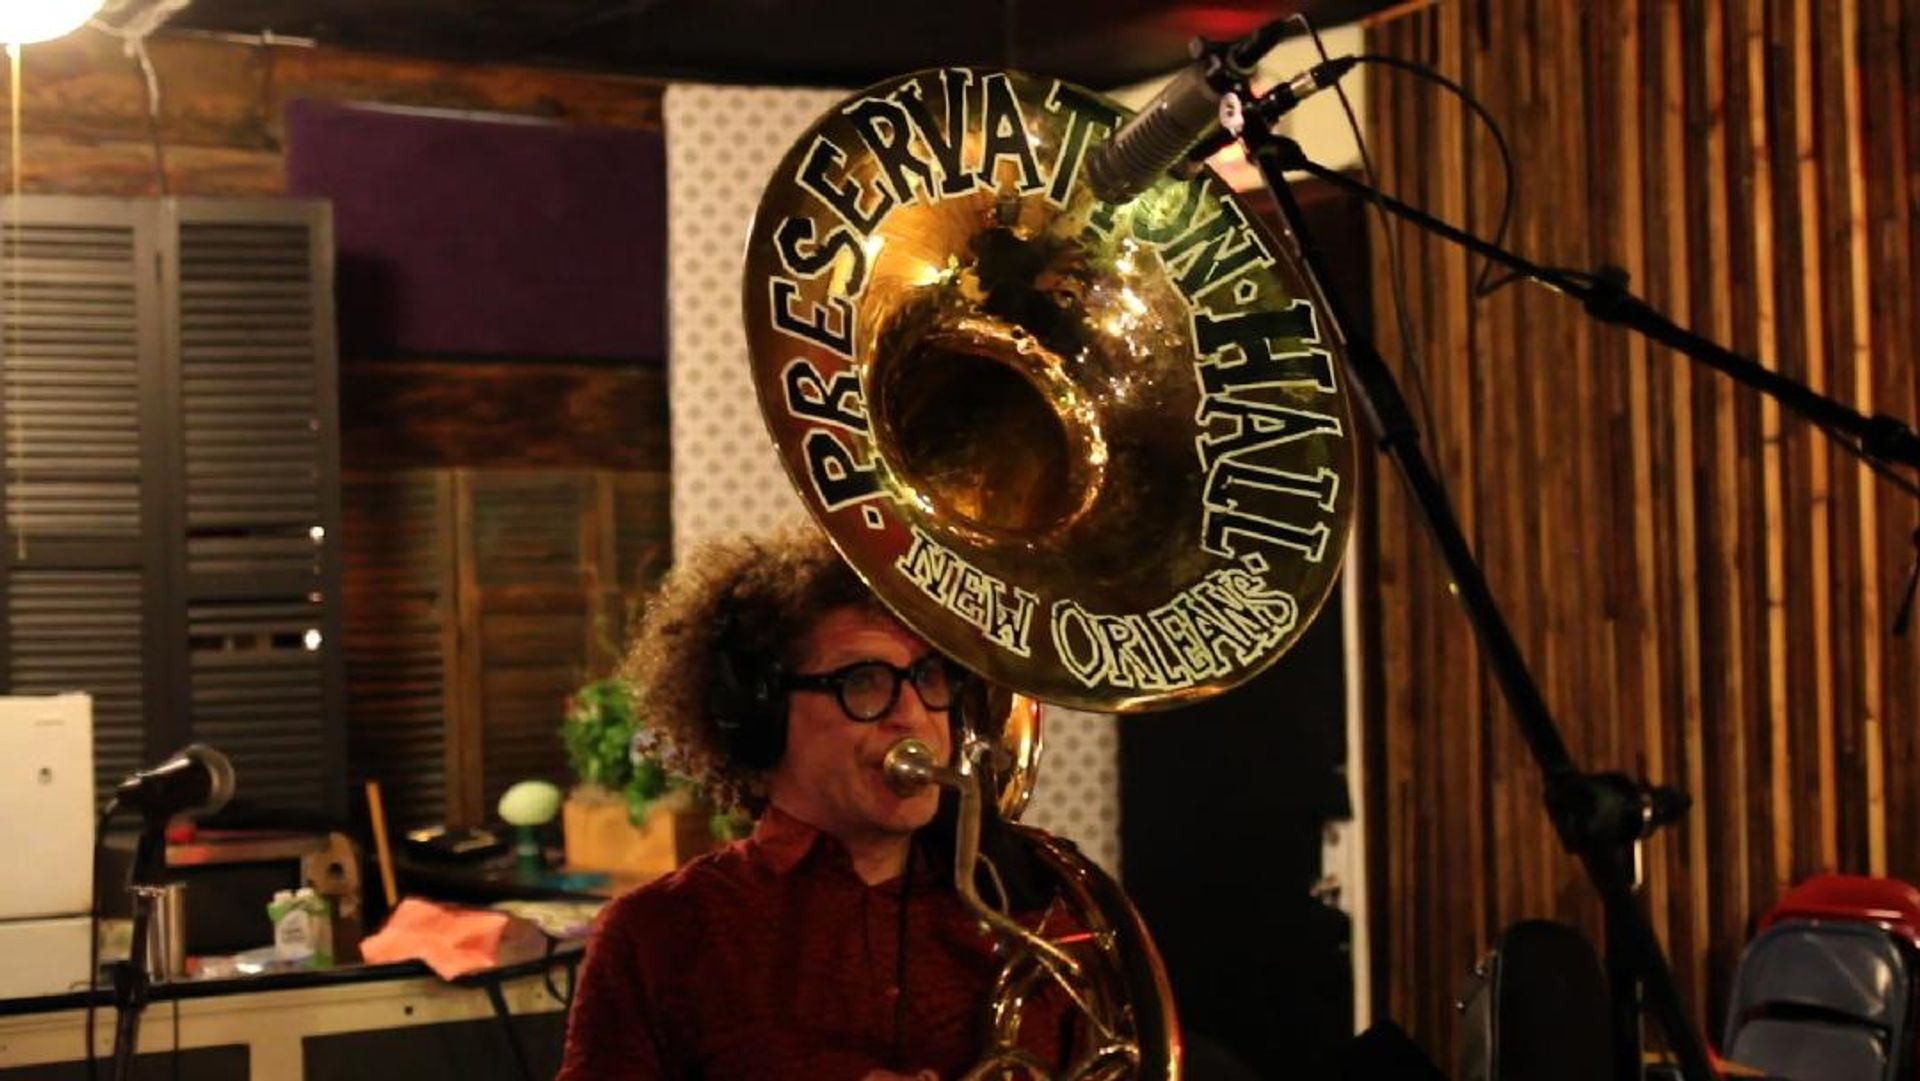 Preservation Hall Jazz Band: Behind The Scenes